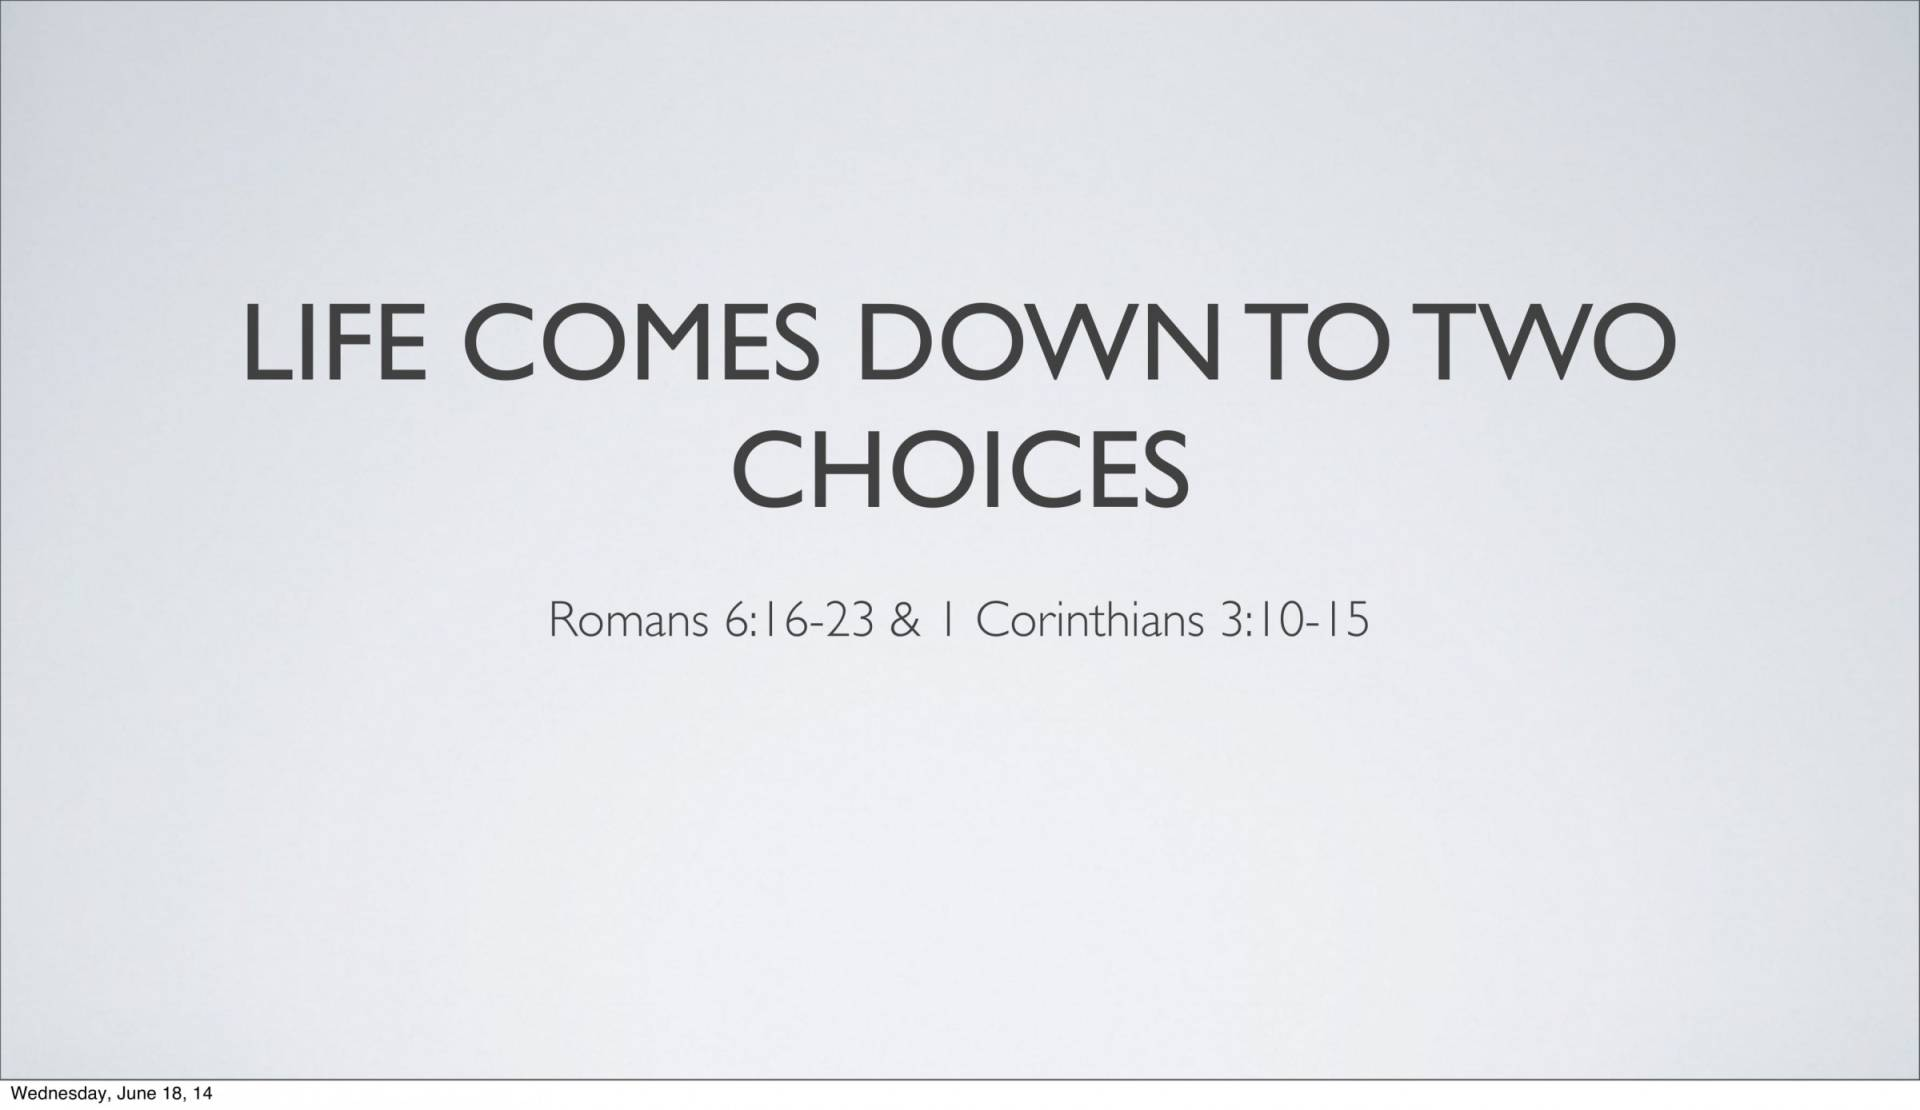 BC&D-14 - Lesson 5-1 - The Inescapable Consequences Of Sin-19